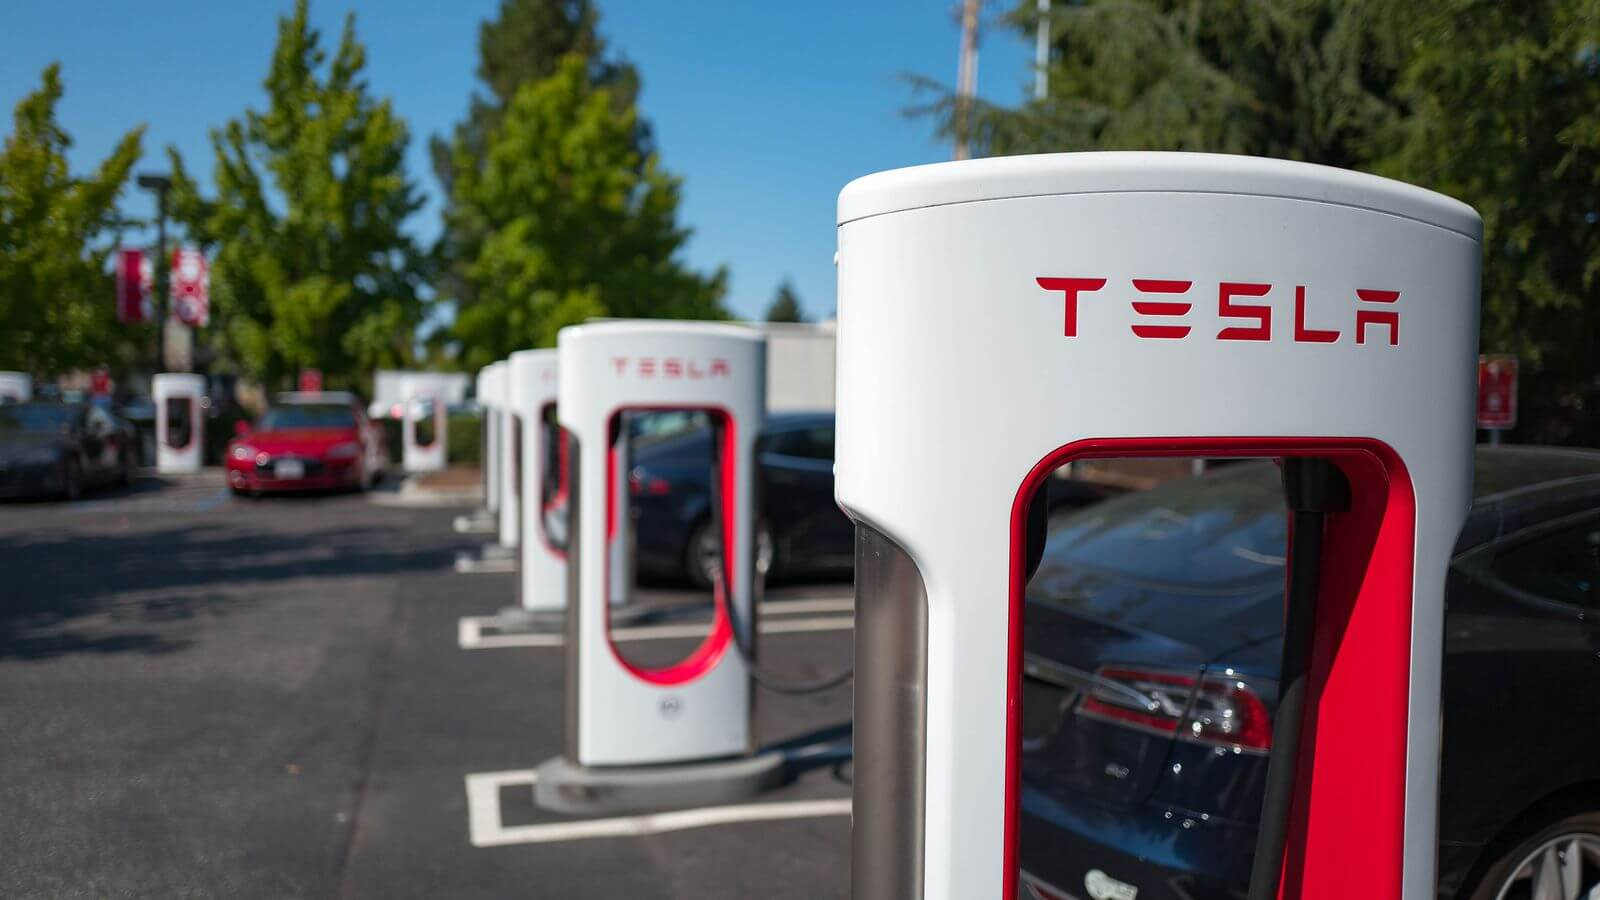 Tesla increases Supercharging prices to the point that gas